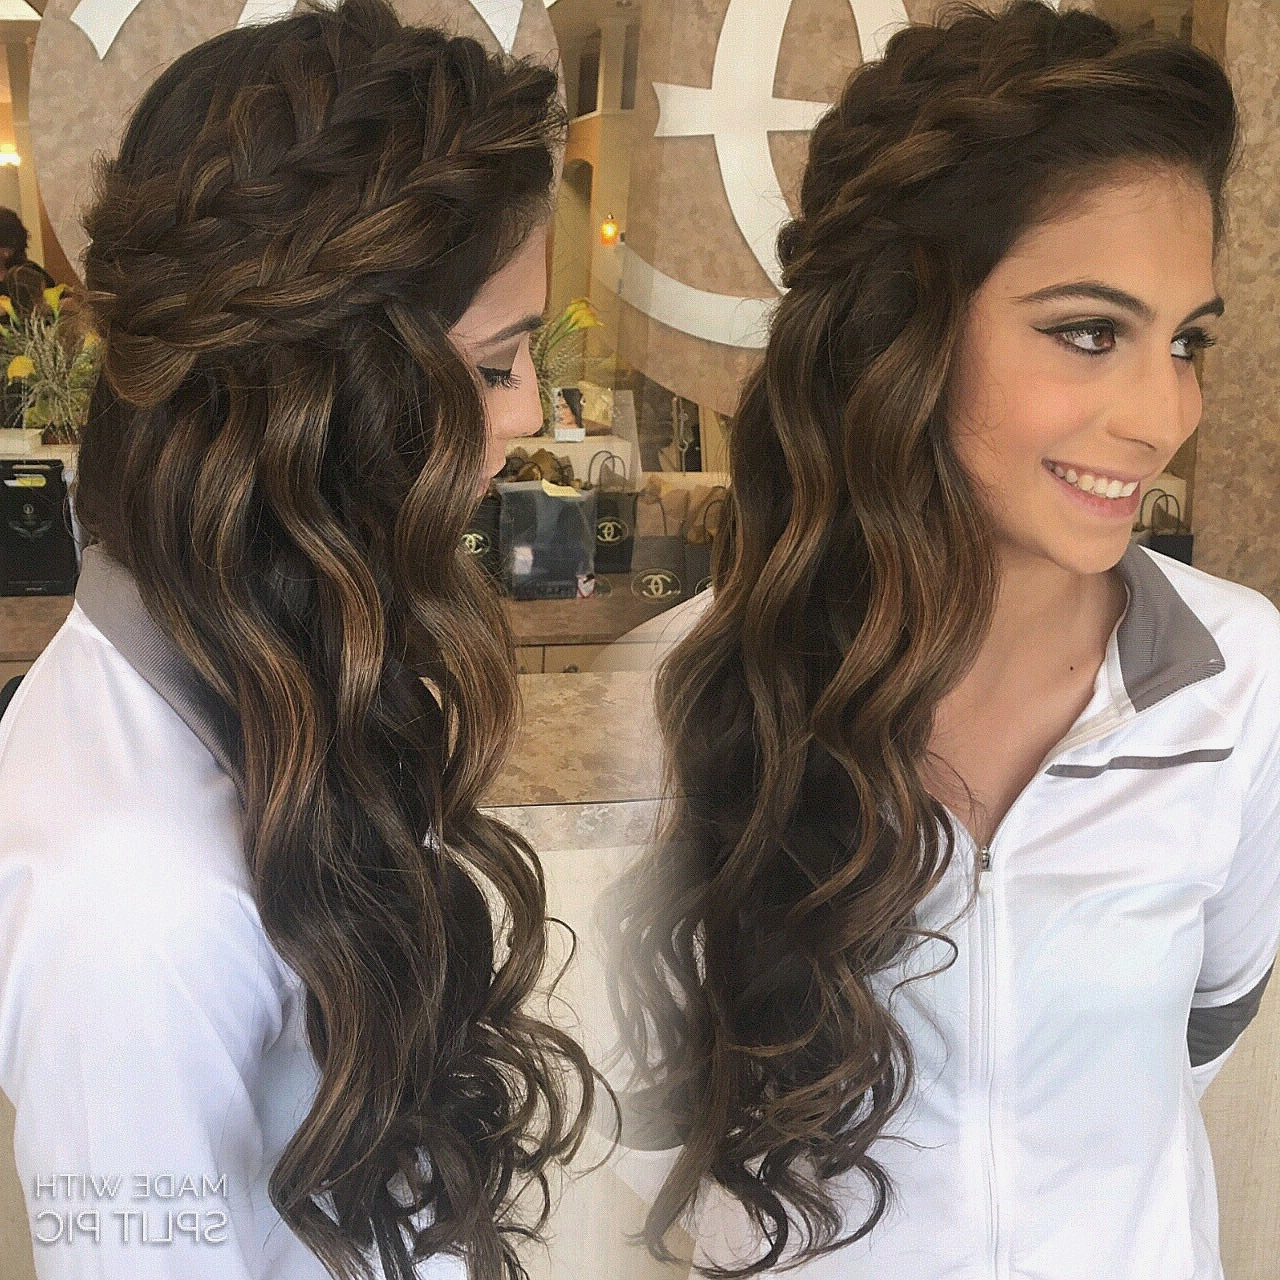 Wedding Hairstyles : Creative Curls To One Side Wedding Hairstyles With Well Known Curls To The Side Wedding Hairstyles (View 15 of 15)